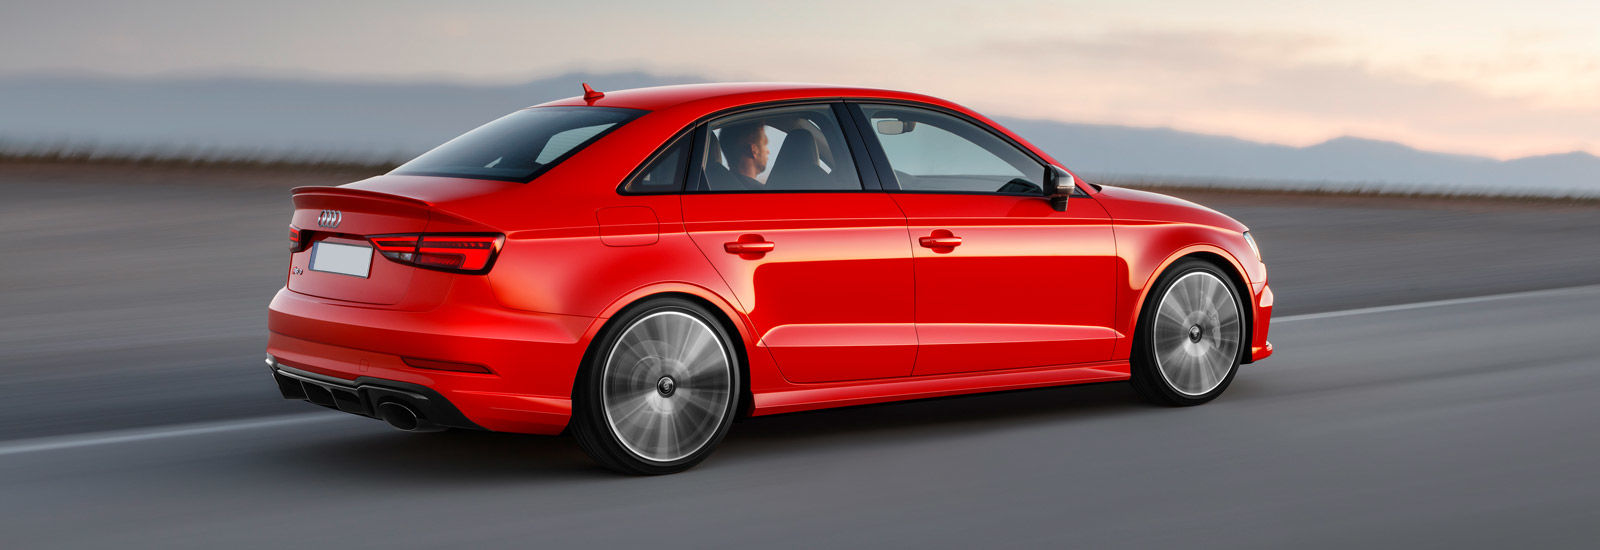 New Audi RS3 Saloon price, specs, release date | carwow